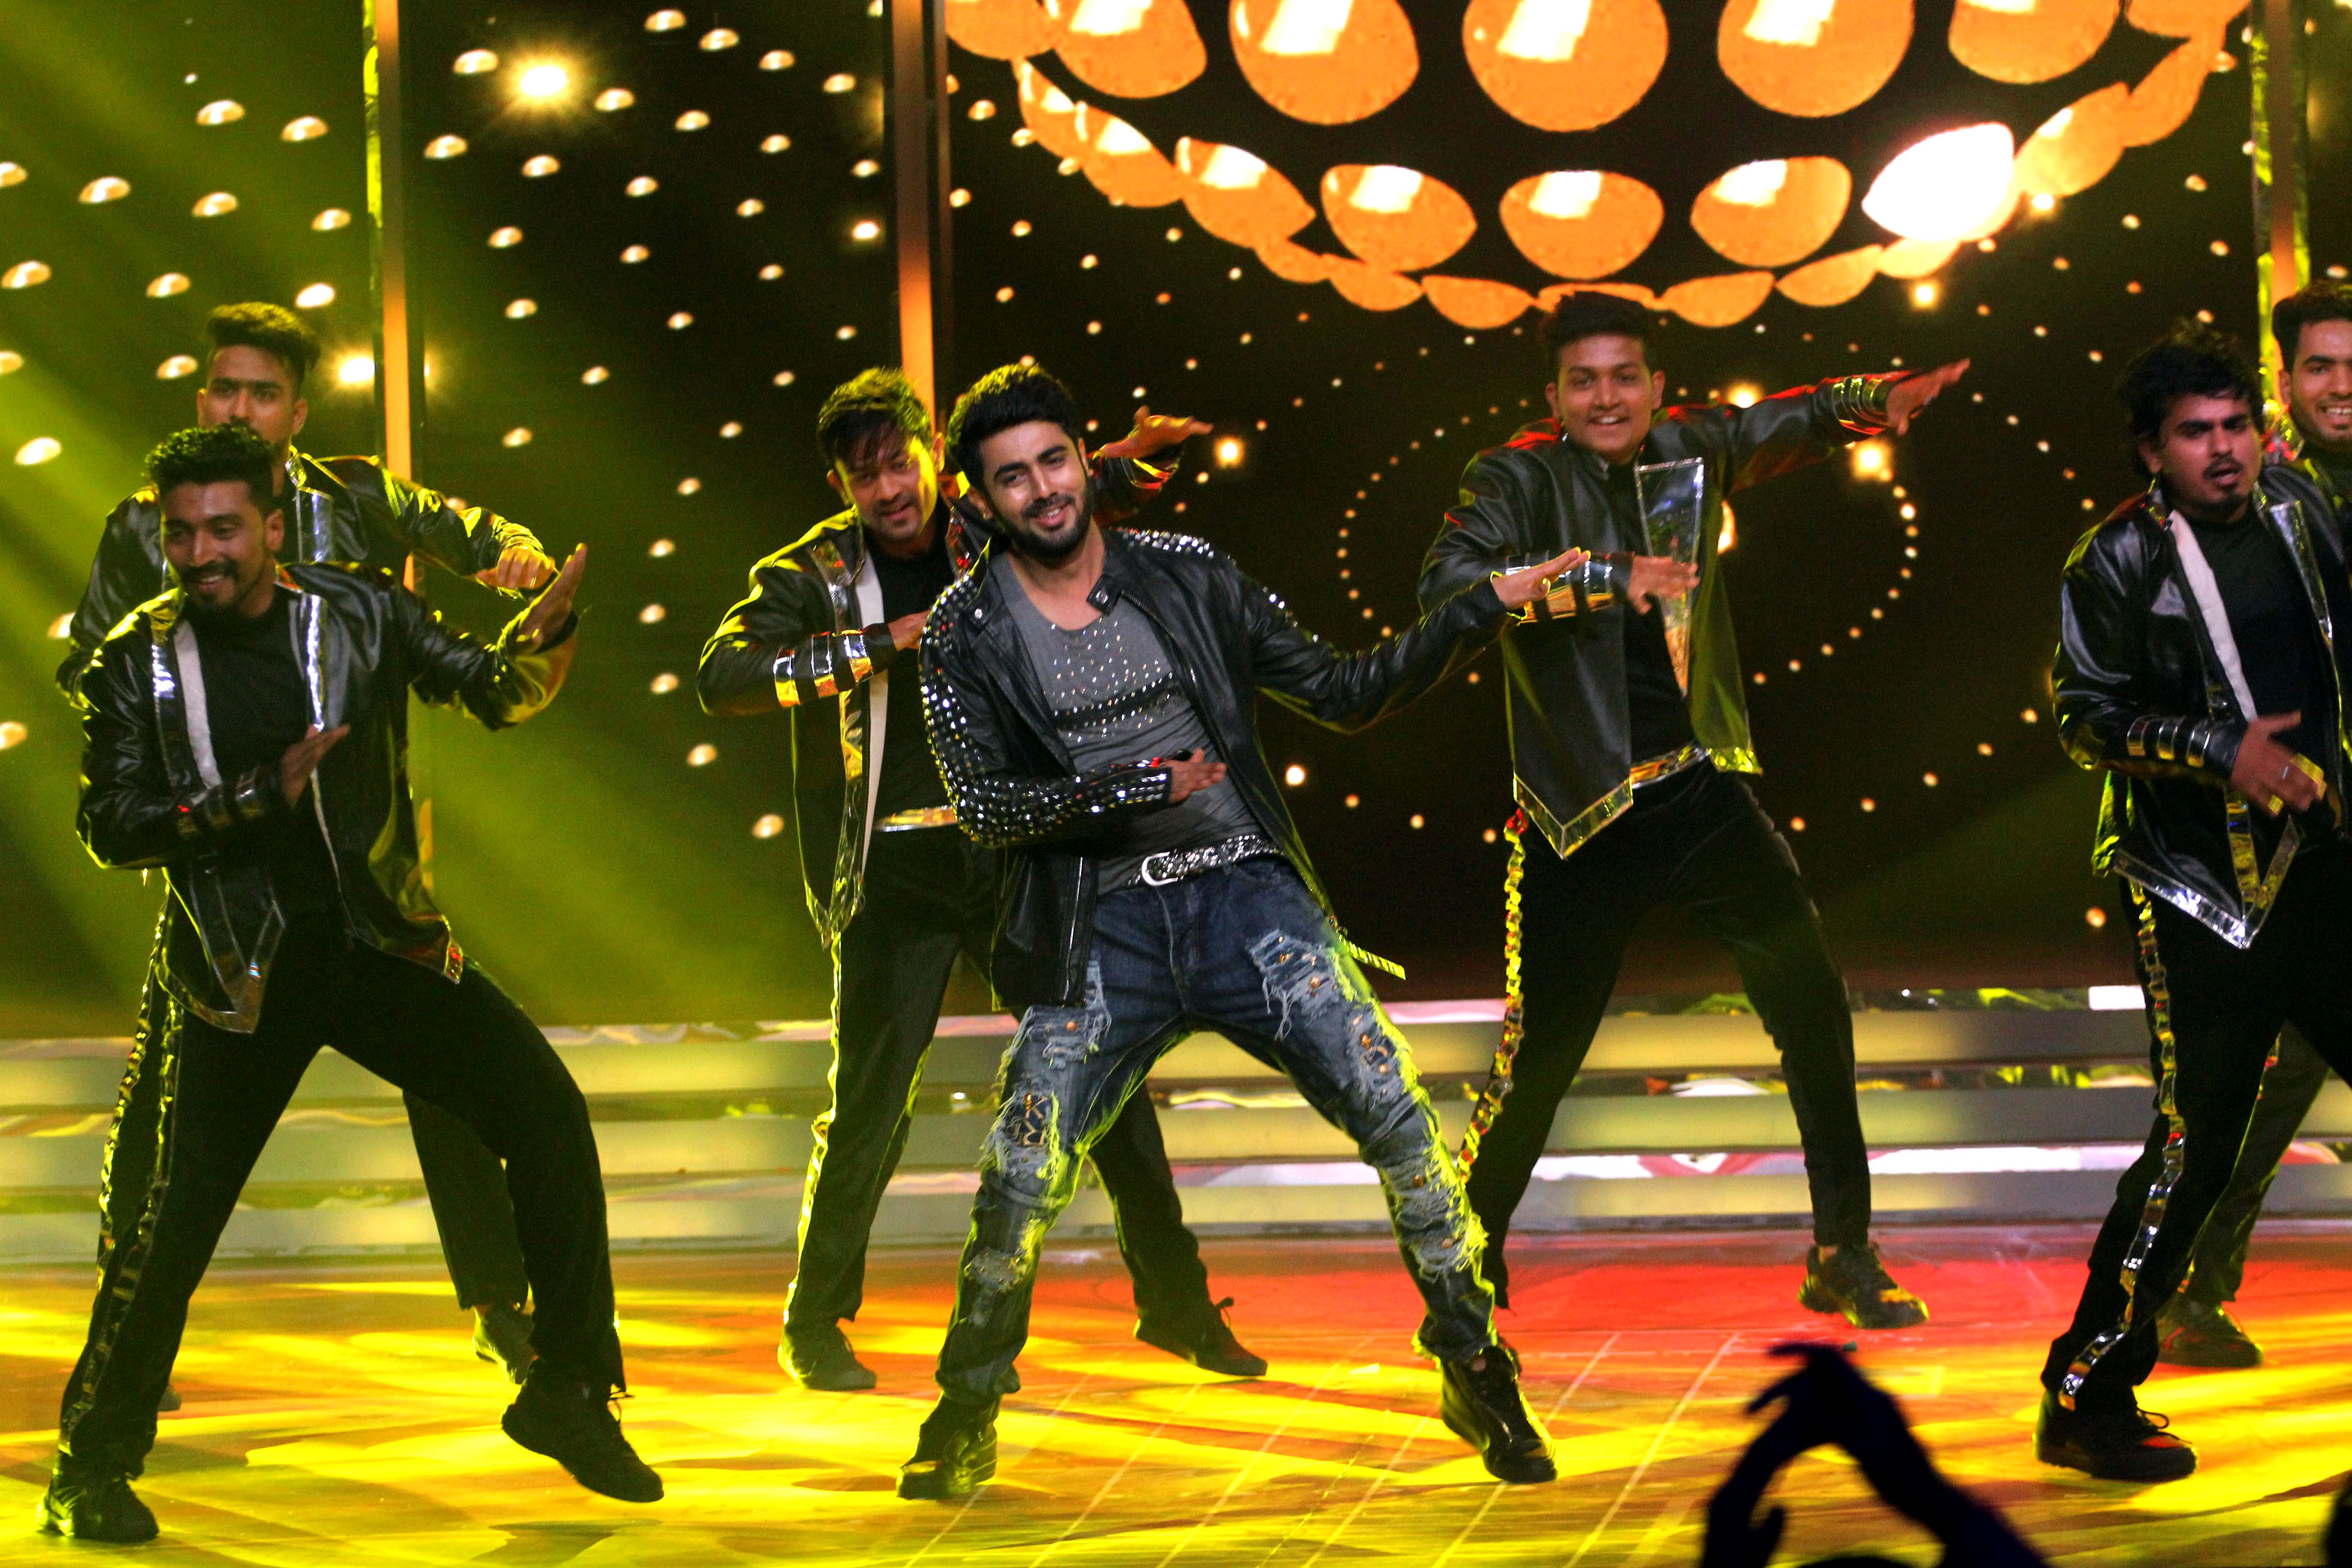 Akshay Mhatre Performing For The 1000 Episdoes Of Kumkum Bhagya Celebration 1 Journo Views Akshay mhatre is an indian television actor who made his debut in 2017 with the show piyaa albela which is airing on zee tv. journo views